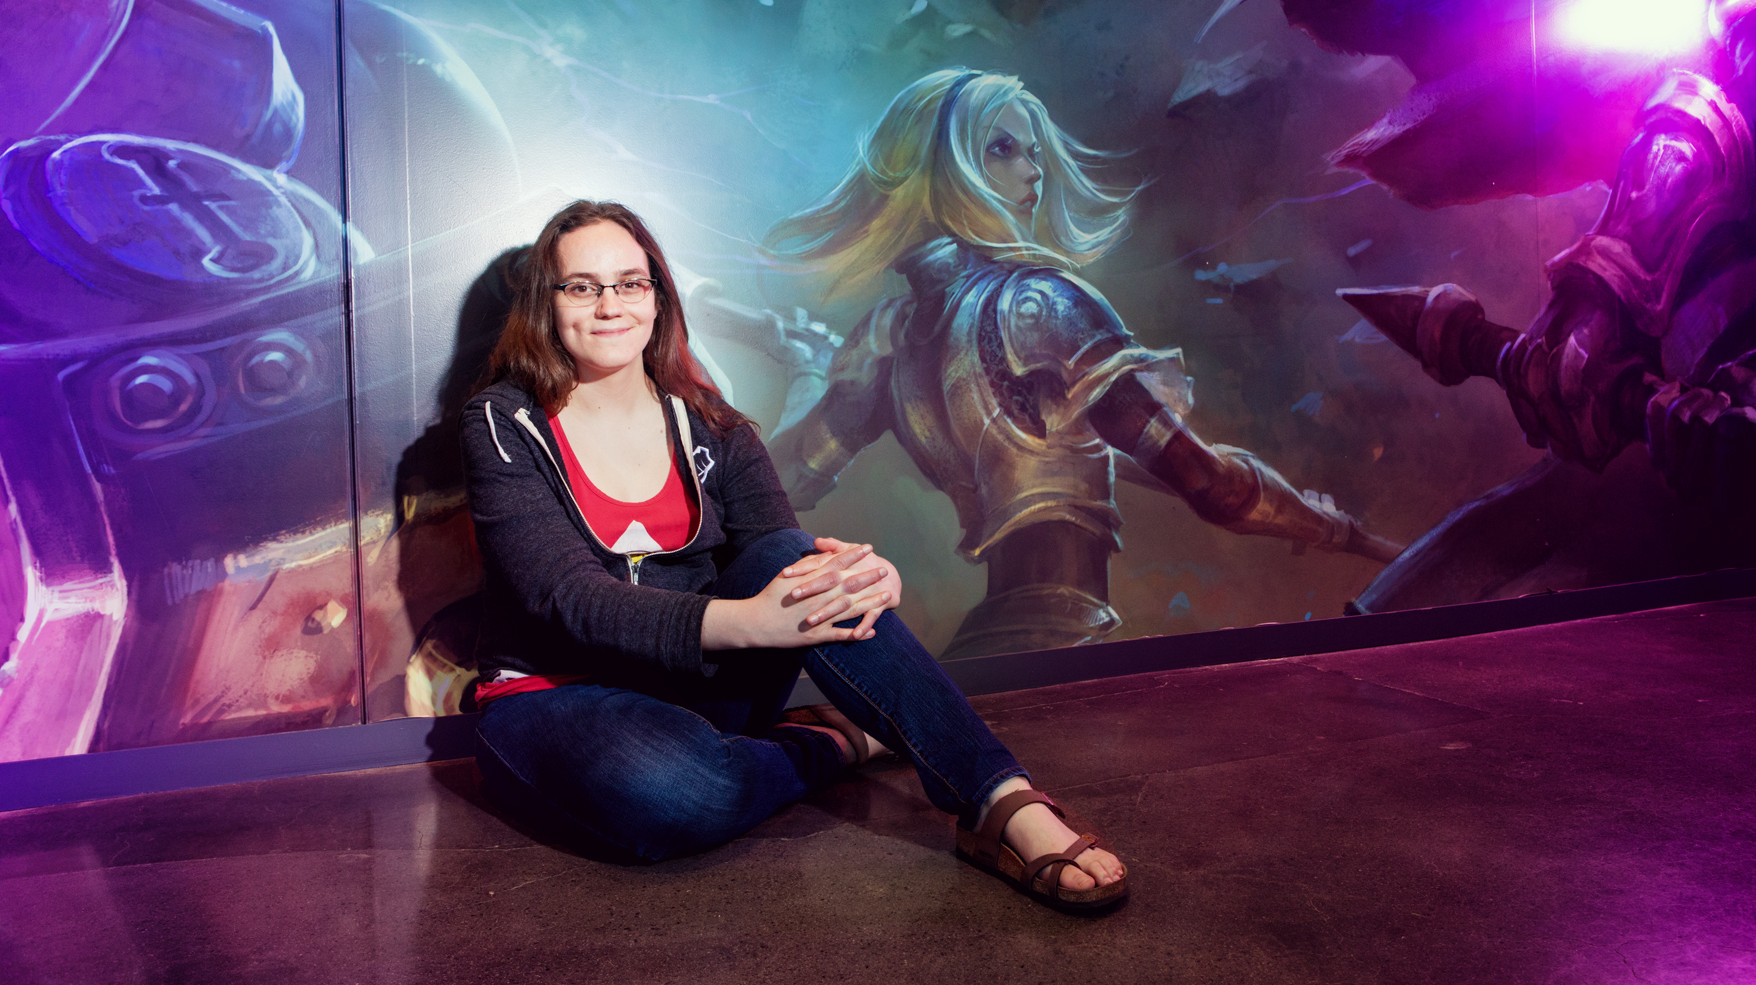 As an online behavior systems designer for Riot Games, Naomi McArthur works to create a system of good sportsmanship in an exploding industry.